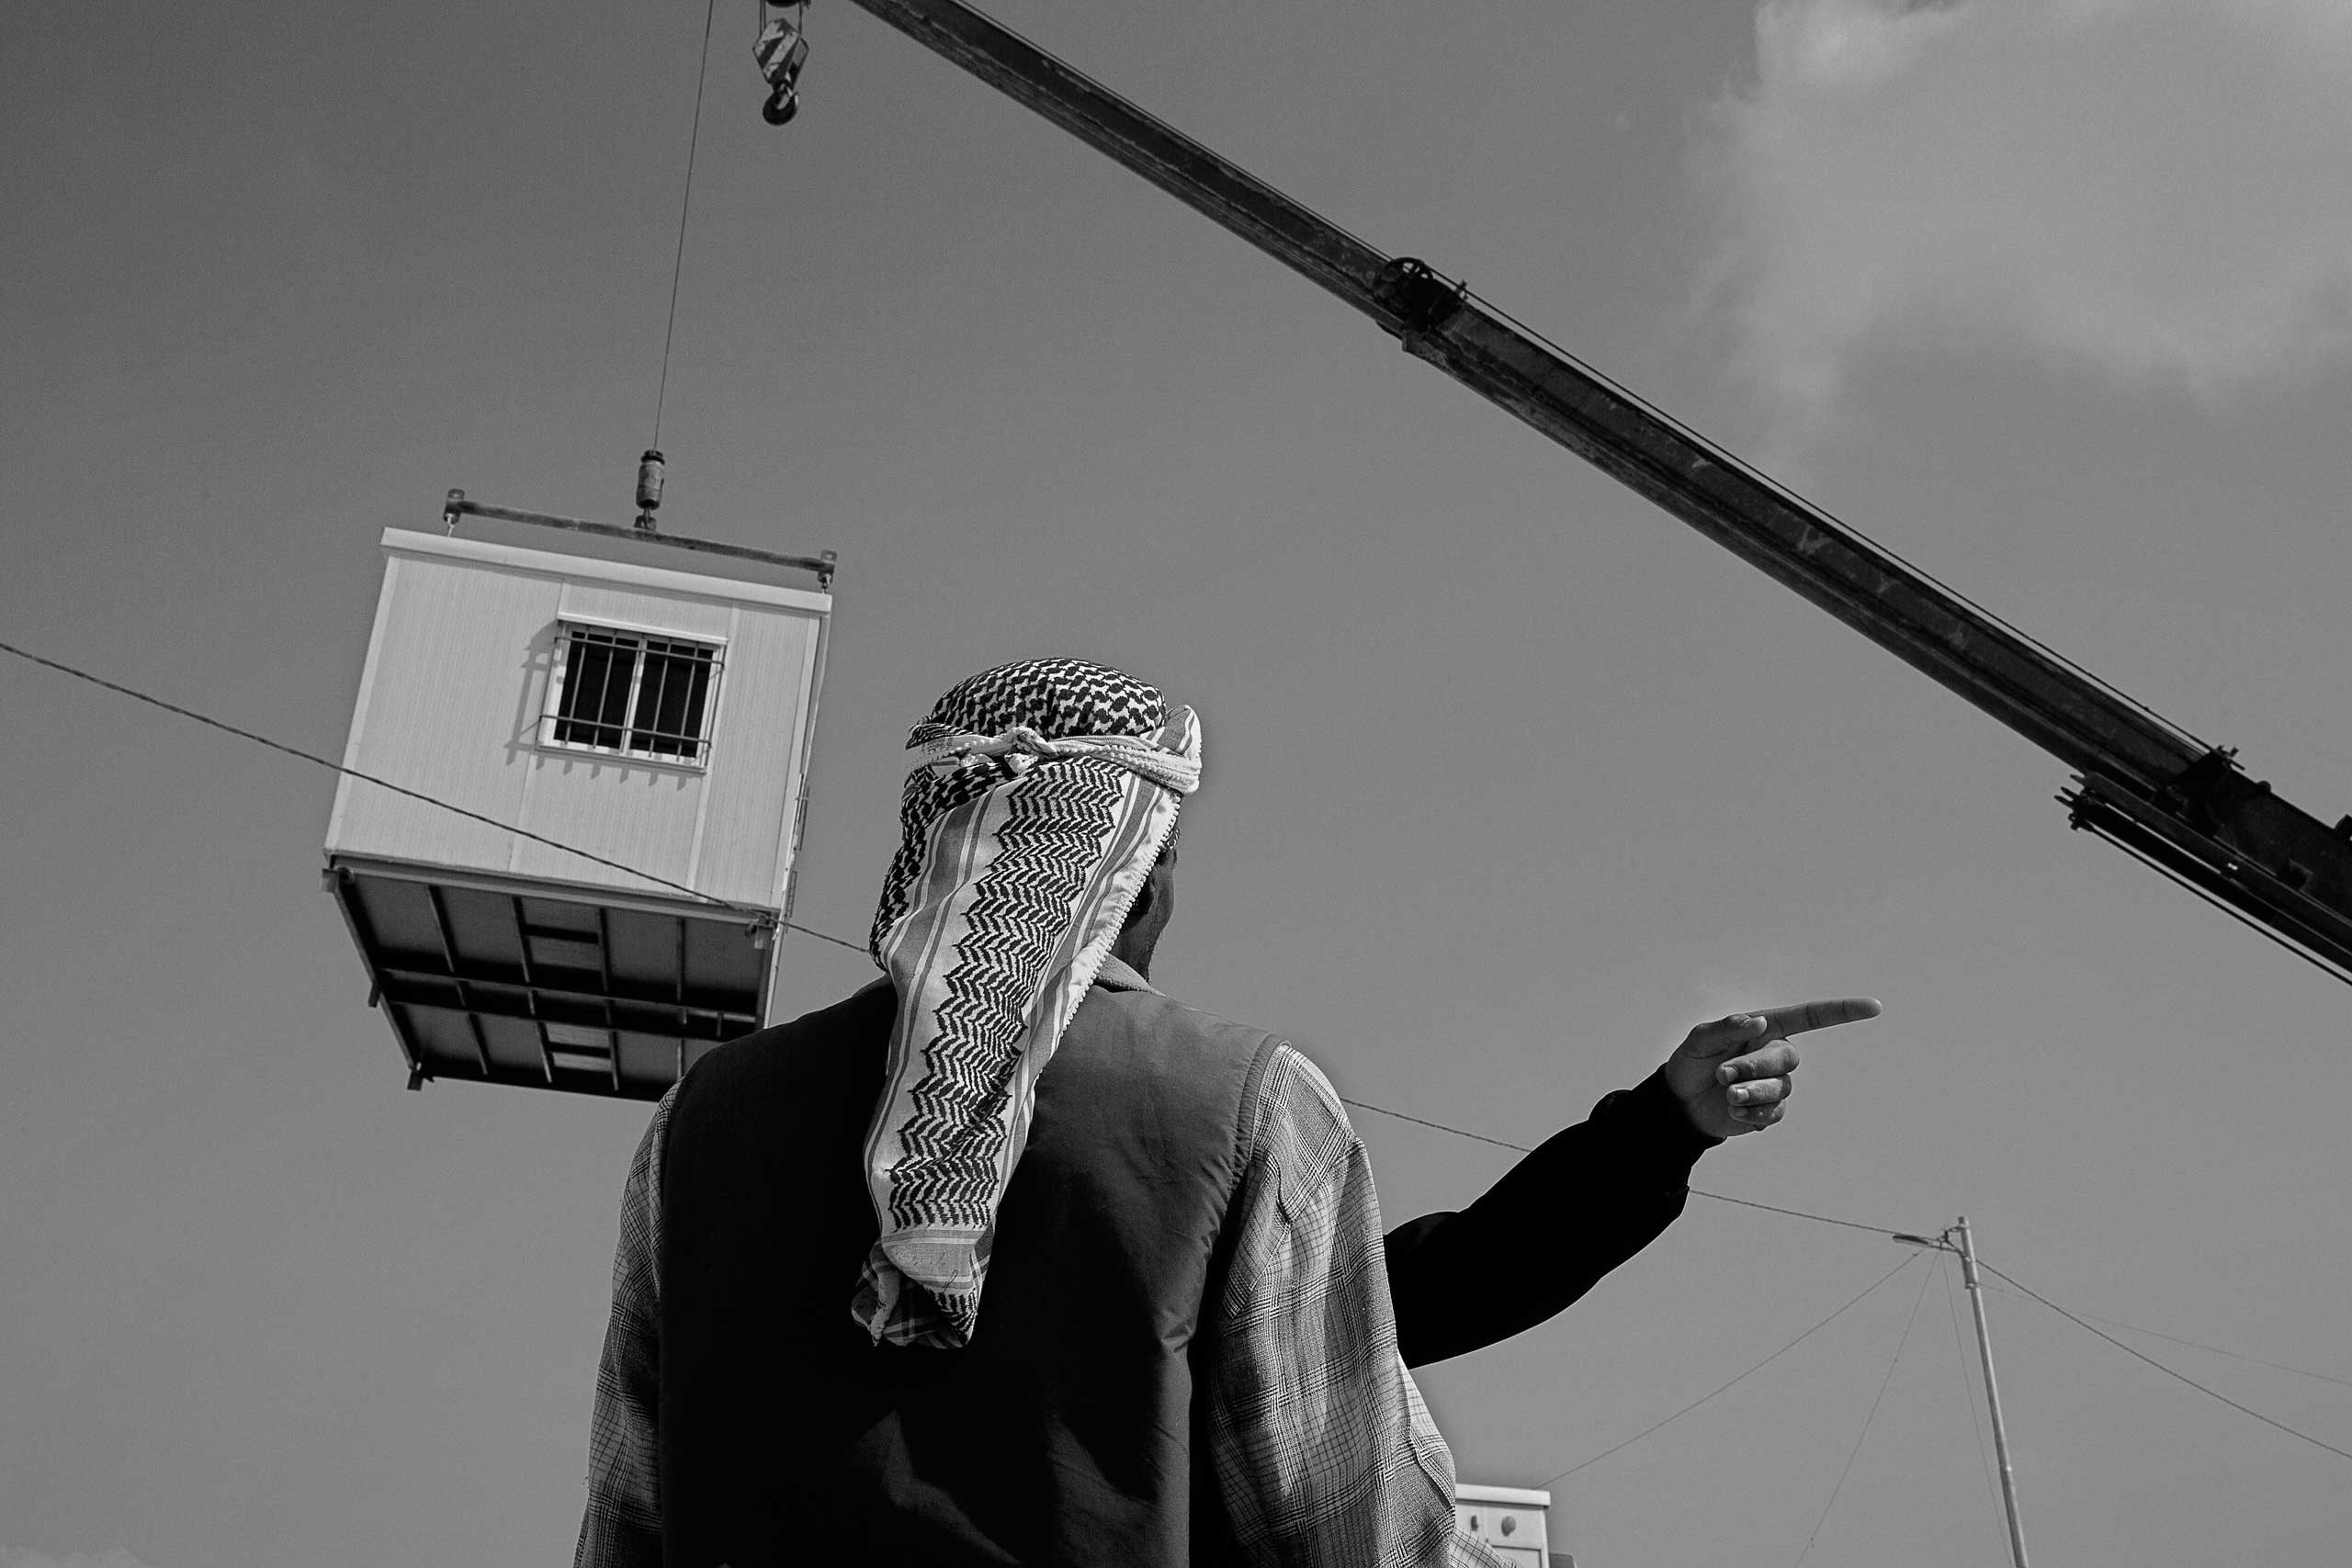 December 2013. Za'atari refugee camp, Jordan. A Syrian refugee watches a prefabricated unit being delivered to replace makeshift tents.